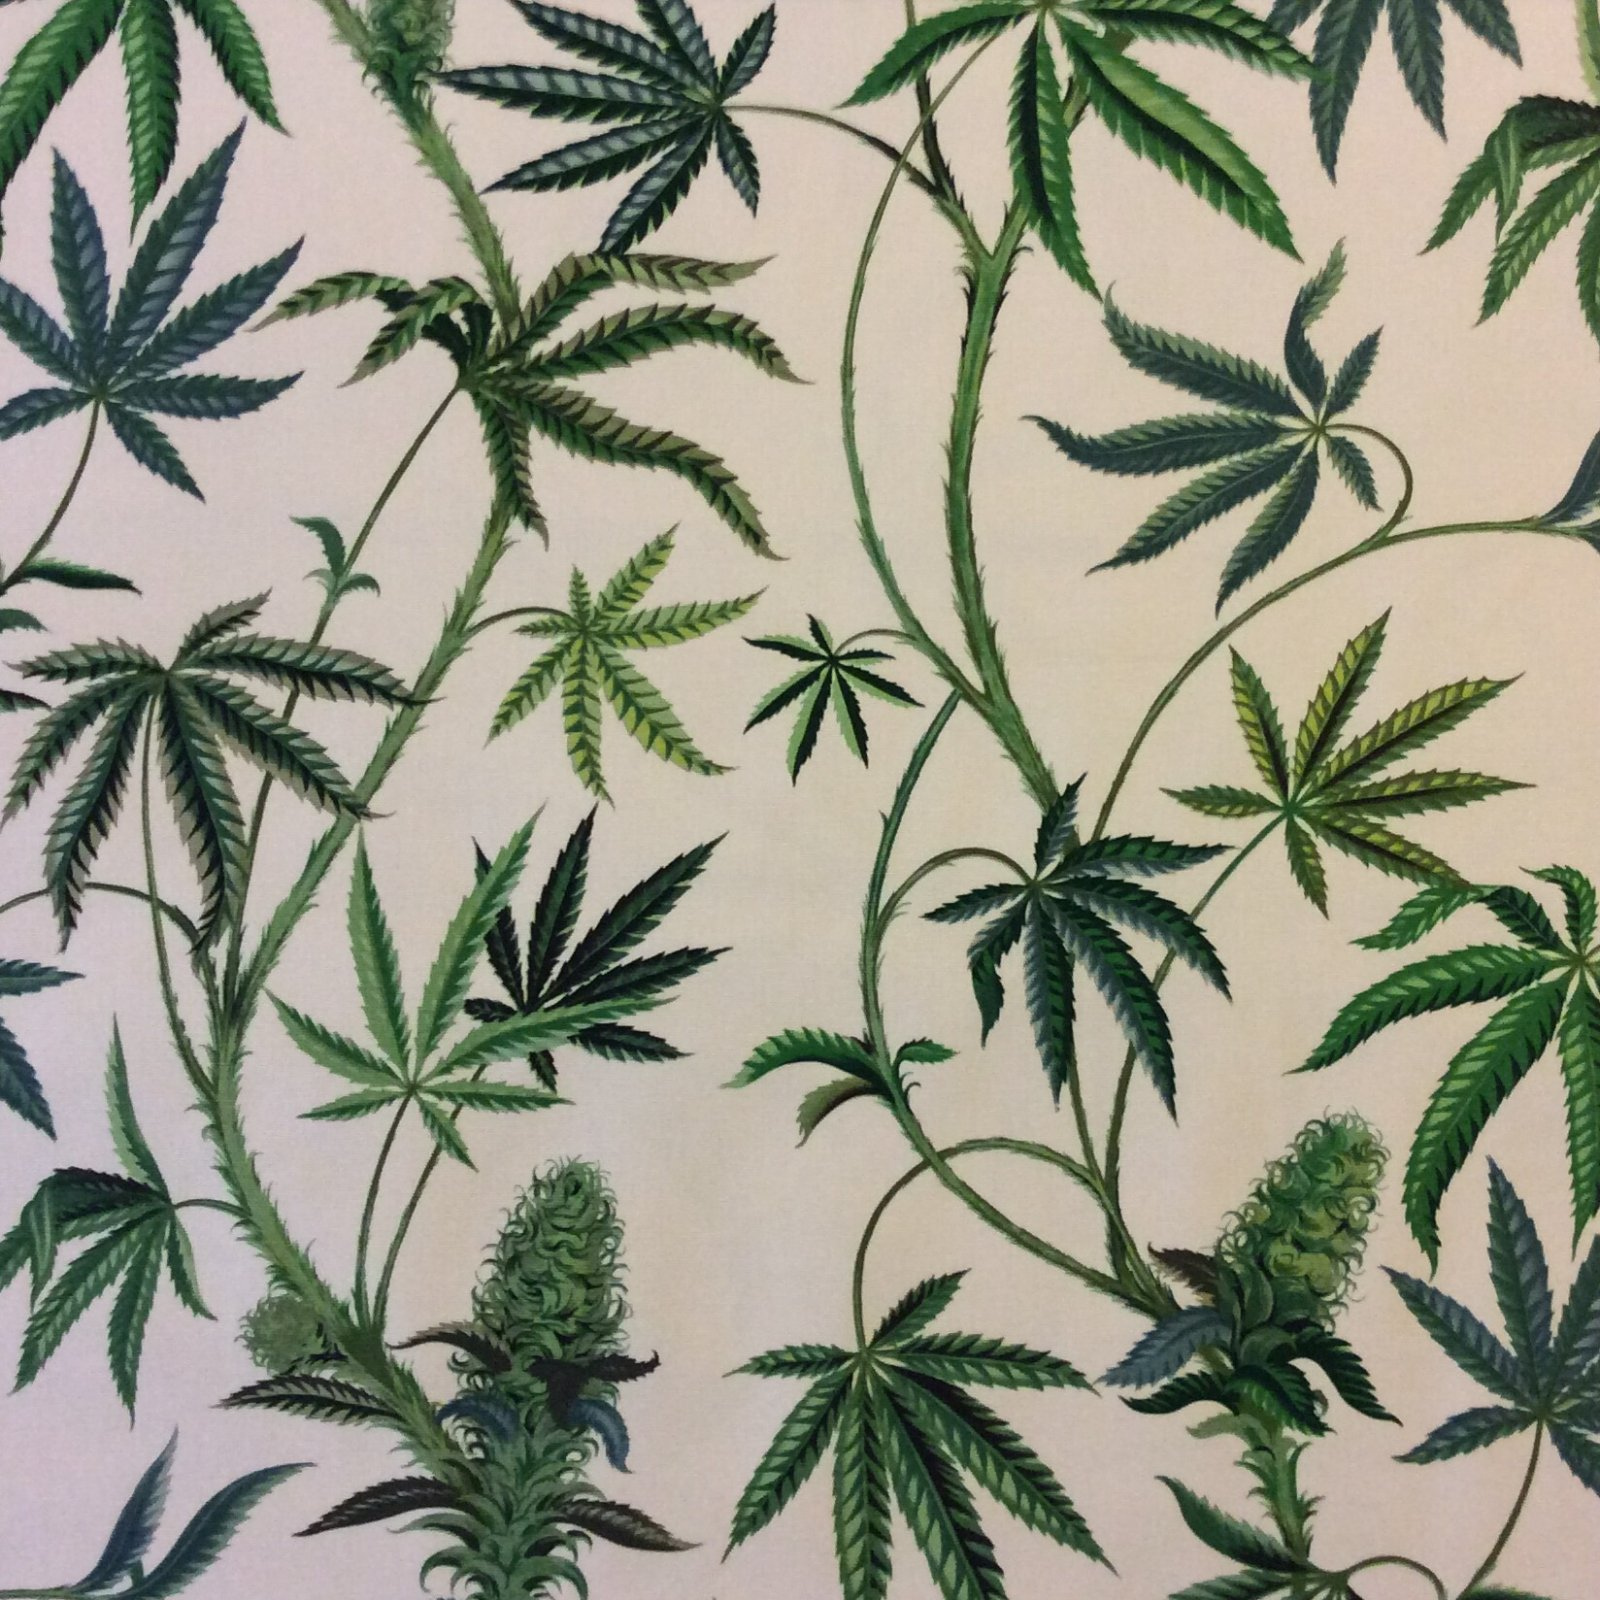 HAH178 lighter colorway  Marijuana CANVAS  Pot Cannabis Wish Cotton Fabric HAH178